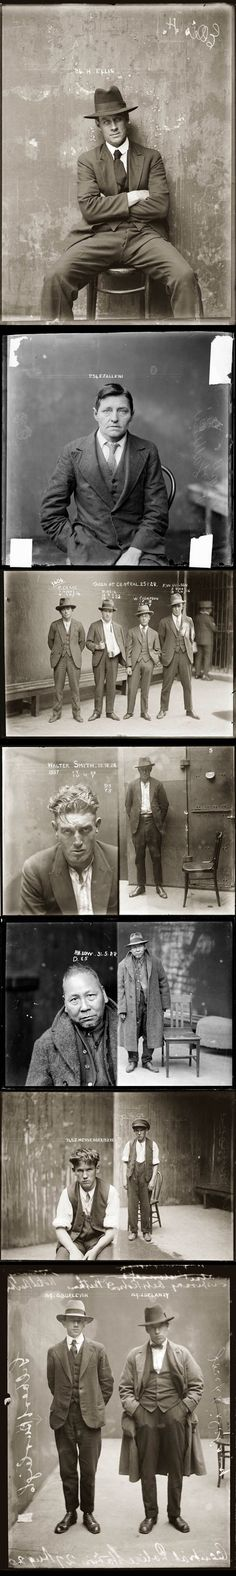 1920s mugshots. Second one done is a transgendered woman to man, without surgery obviously.